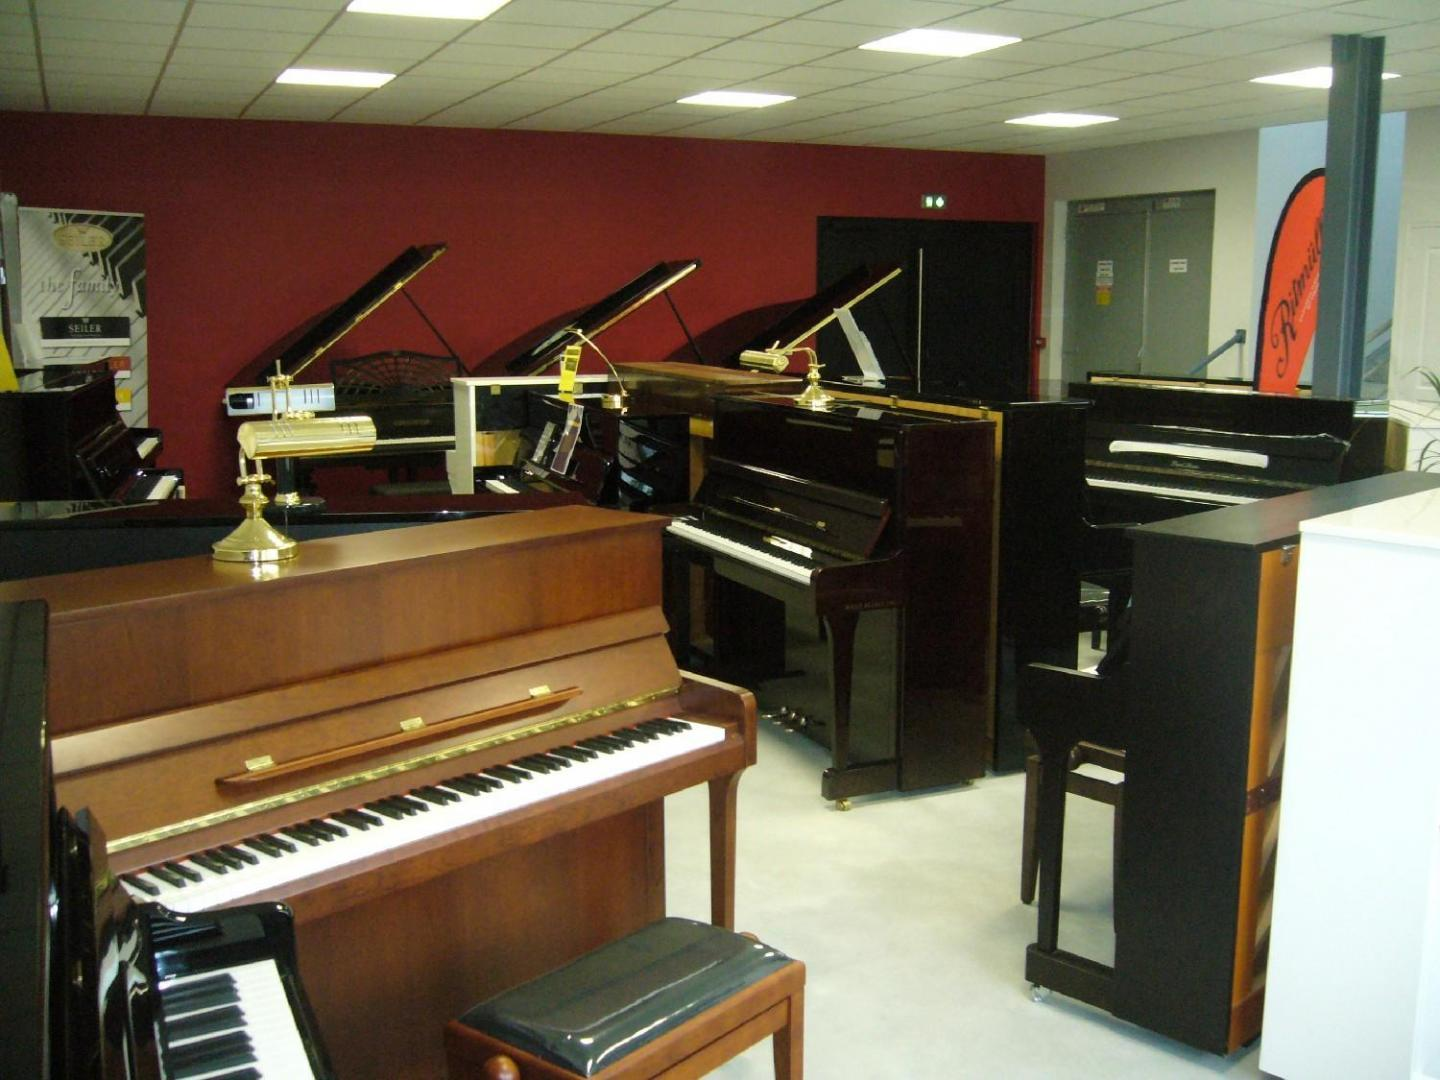 Divers pianos droit en location